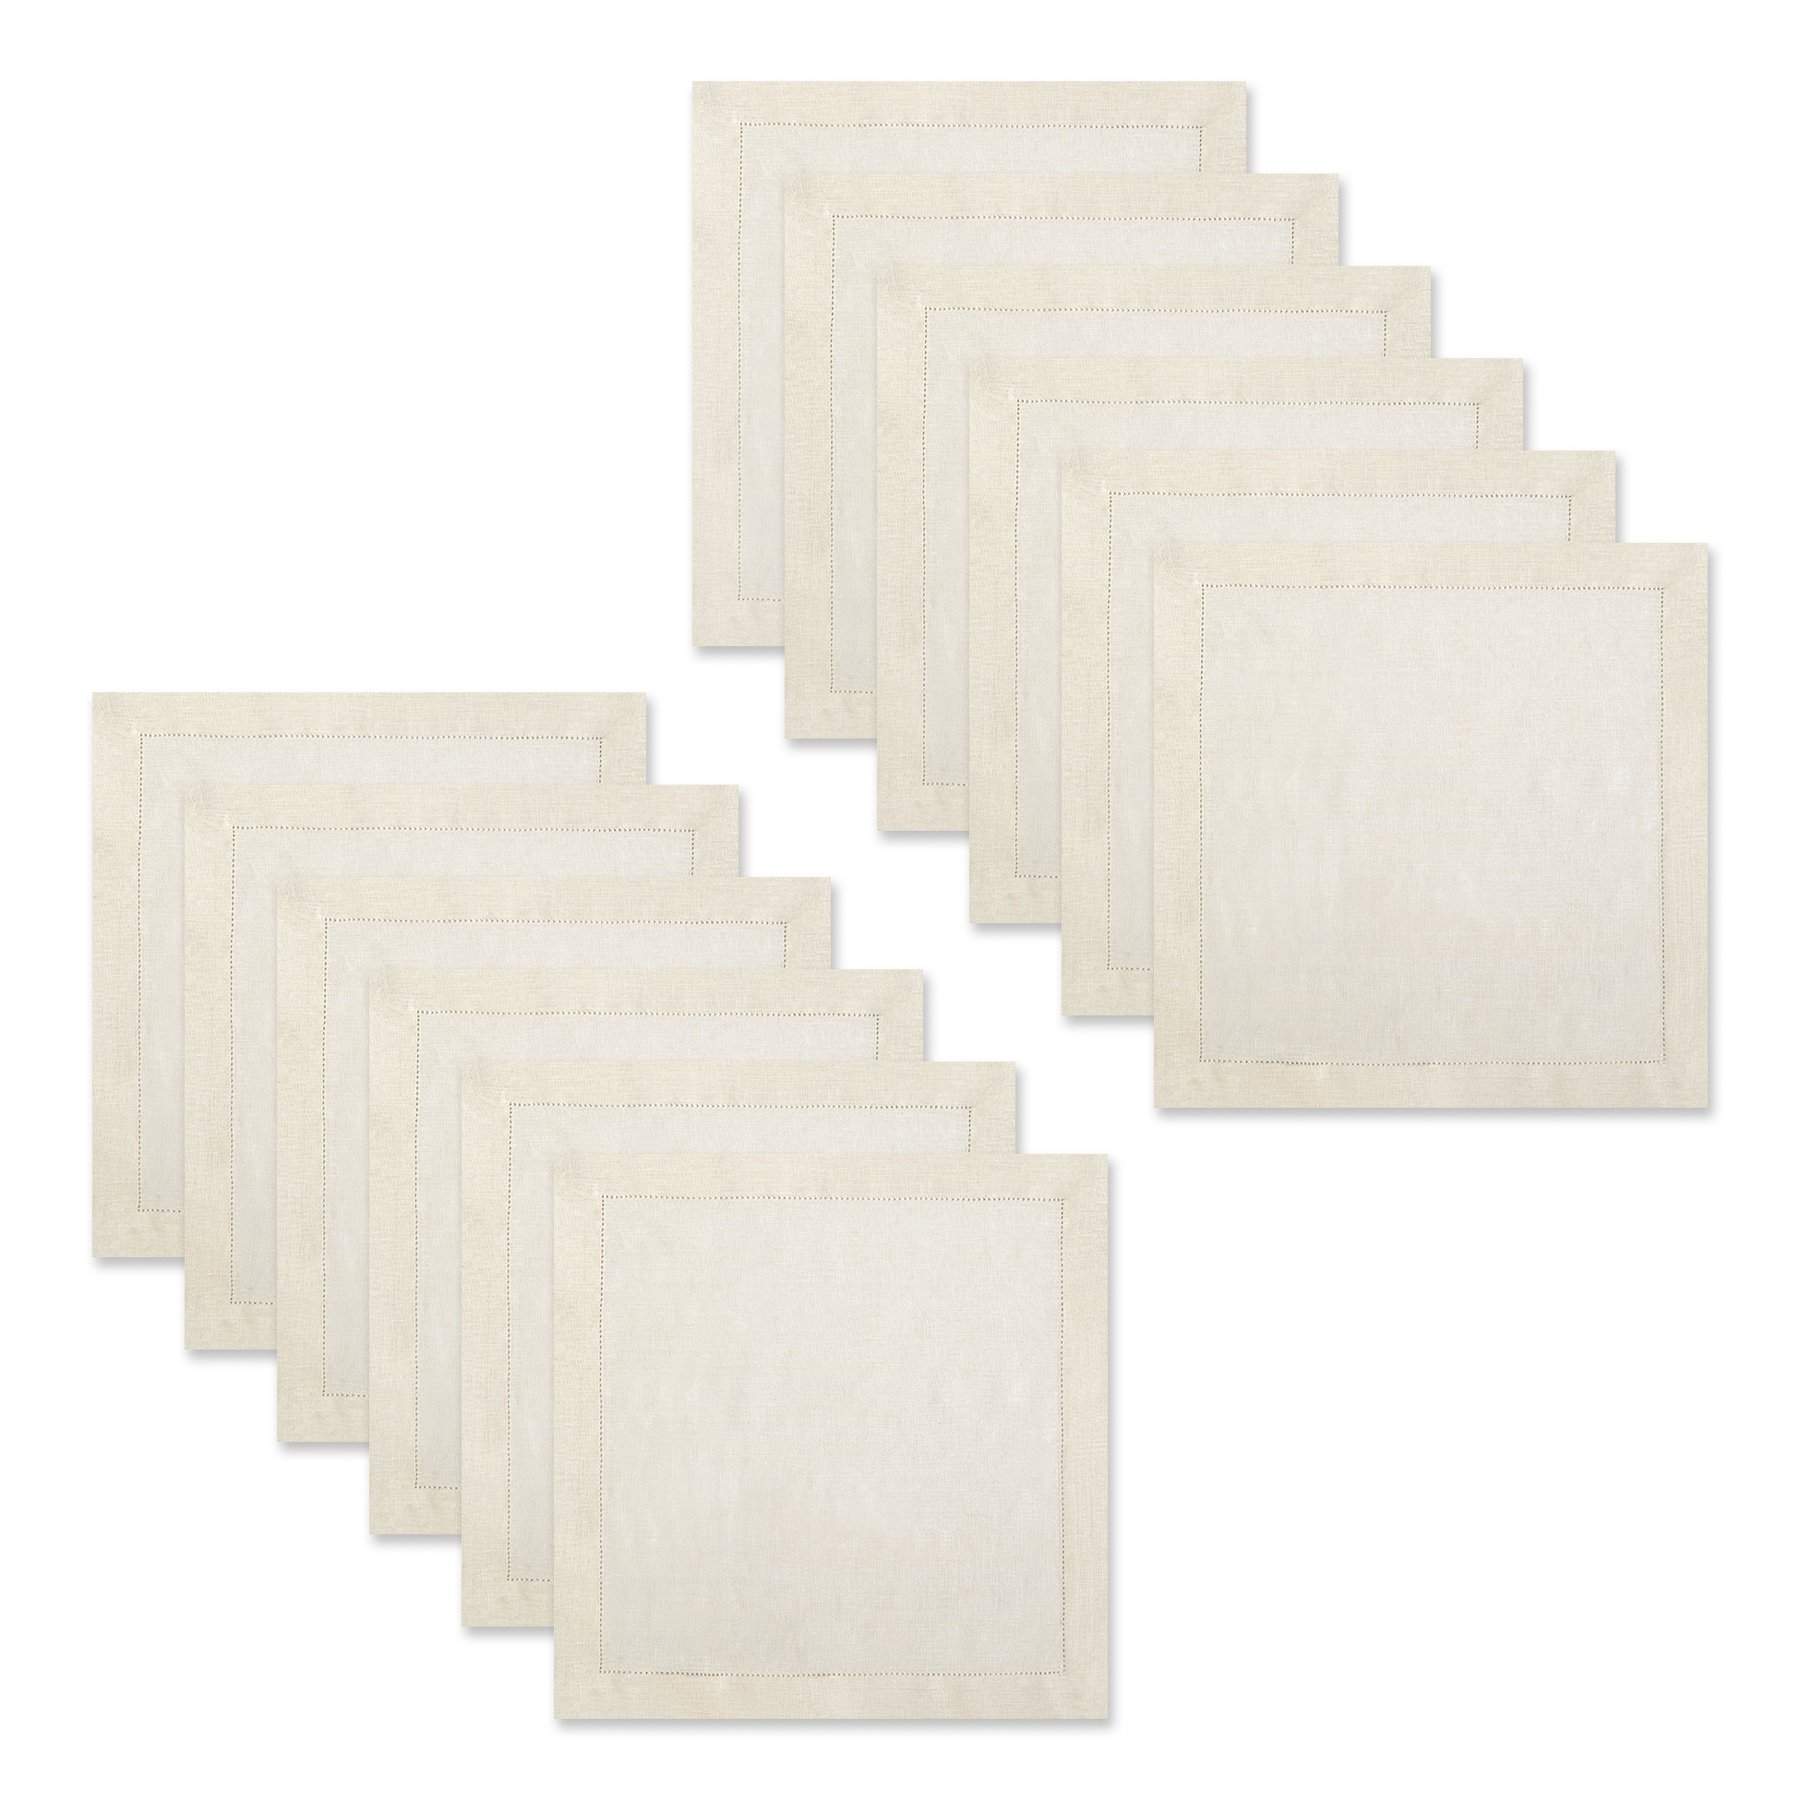 Pure Linen Oversized Napkins 12 Pack - Pure Linen Hemstitch Napkins - (Set of 12) Size 20x20 Ivory - Hand Crafted and Hand Stitched Napkins with Hemstitch detailing on Genuine Linen Fabric